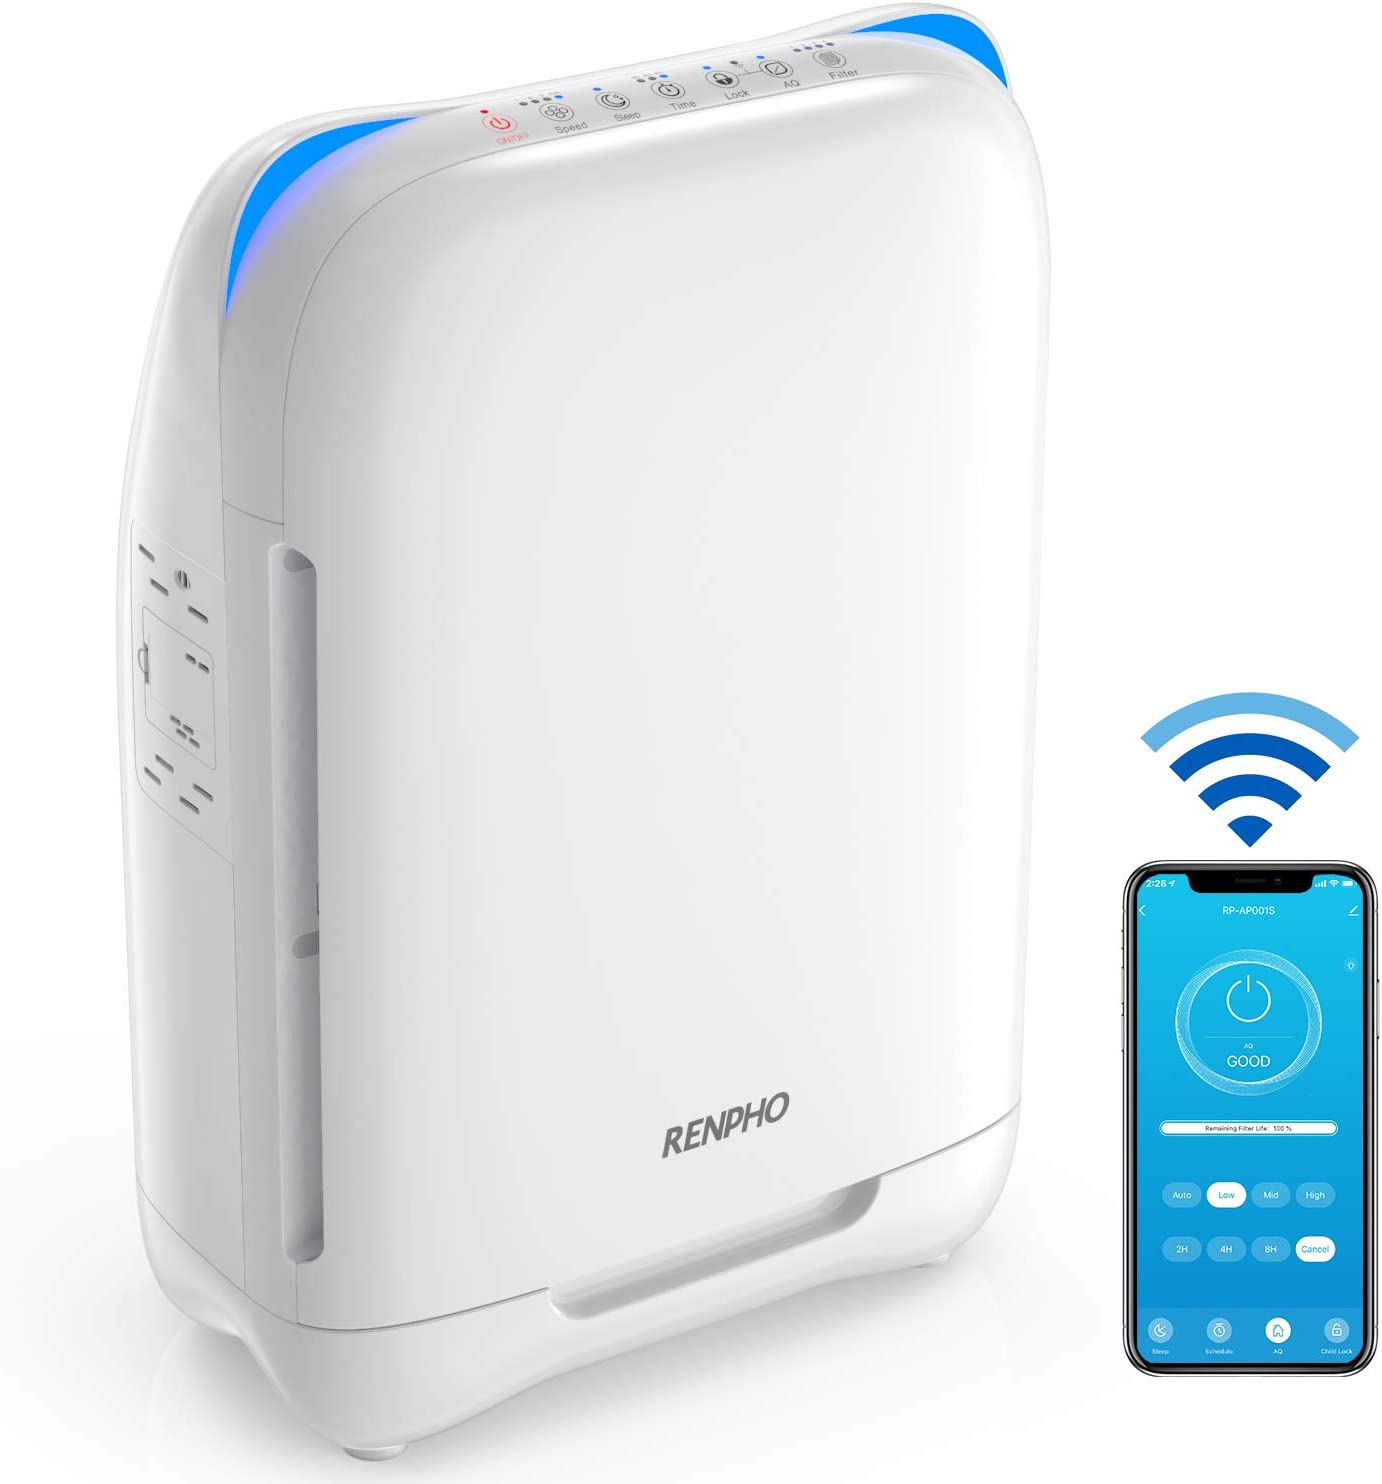 RENPHO Air Purifier True HEPA Filter for Large Room 301 SQ.FT with Smart WiFi, Air Cleaner for Allergies and Pet Dander, Work with Alexa, Personal Air Purifier for Home, Traps Germs Smoke Odor Mold